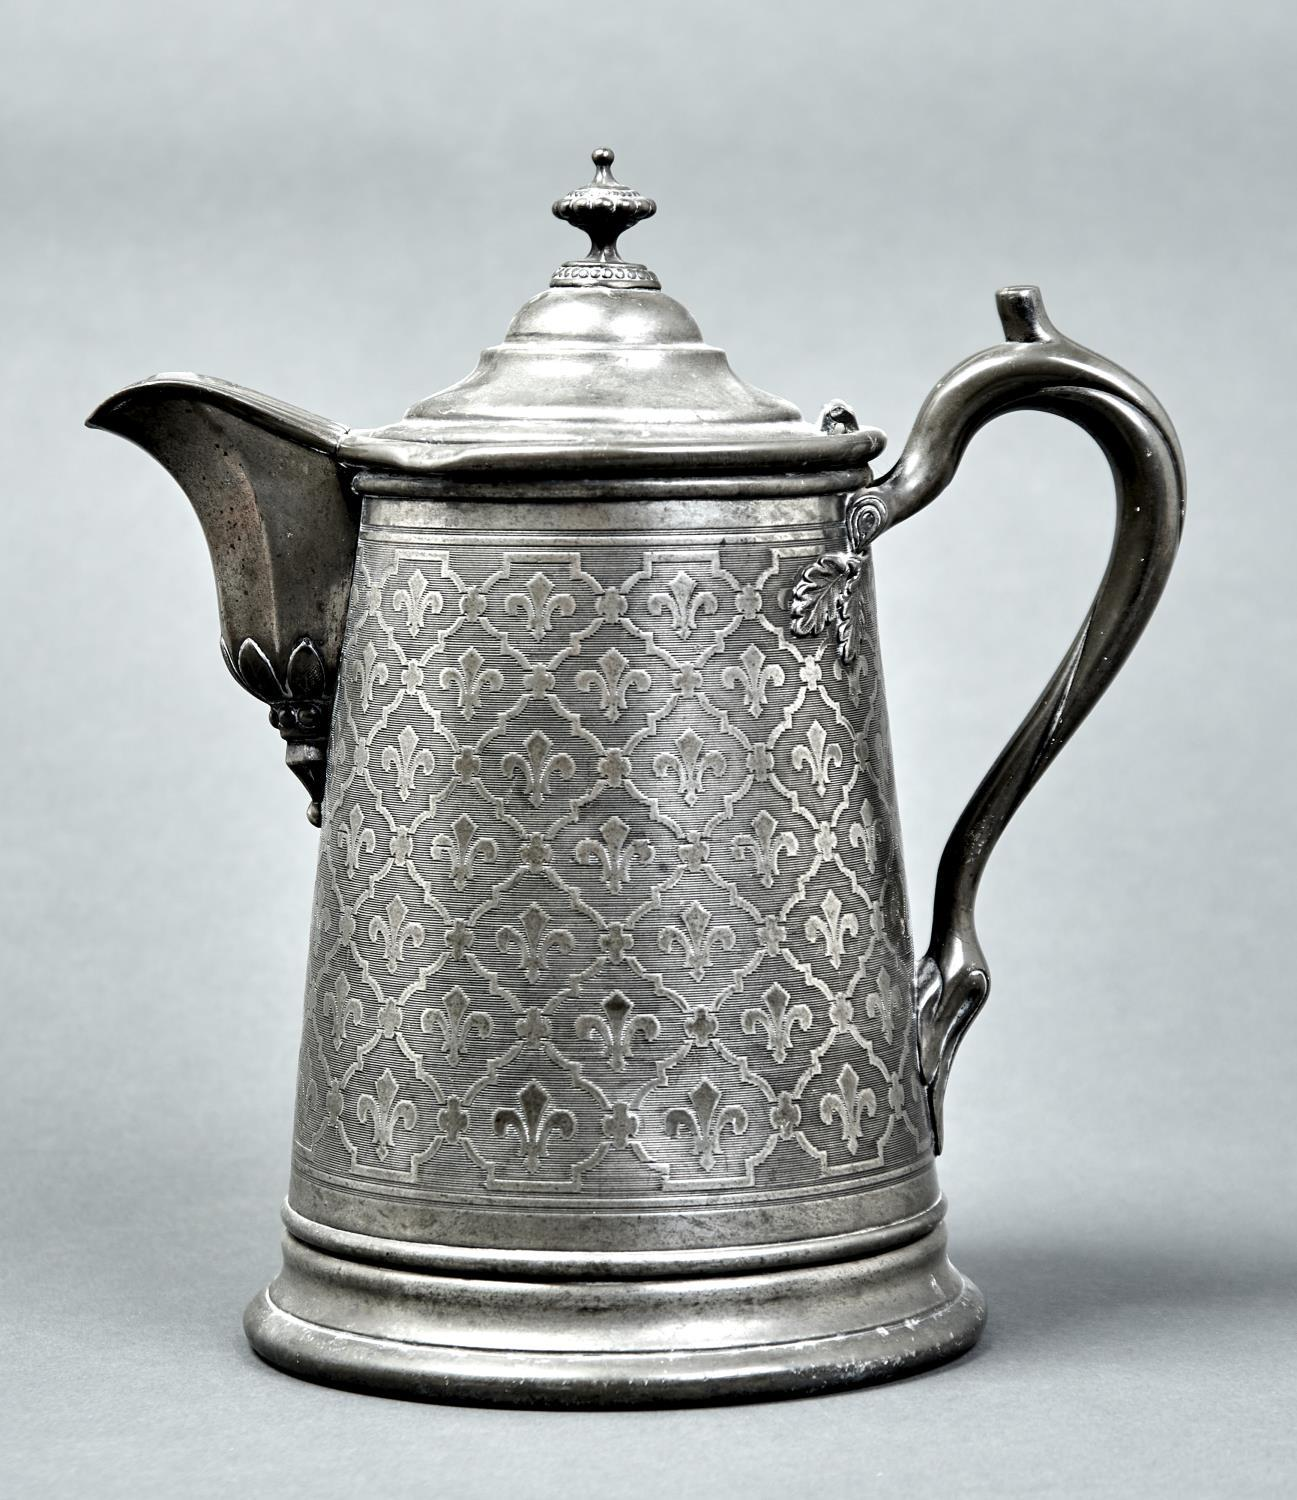 A VICTORIAN BRITANNIA METAL FLAGON, C1880, THE HANDLE ISSUING FROM APPLIED OAK LEAVES, 30CM H